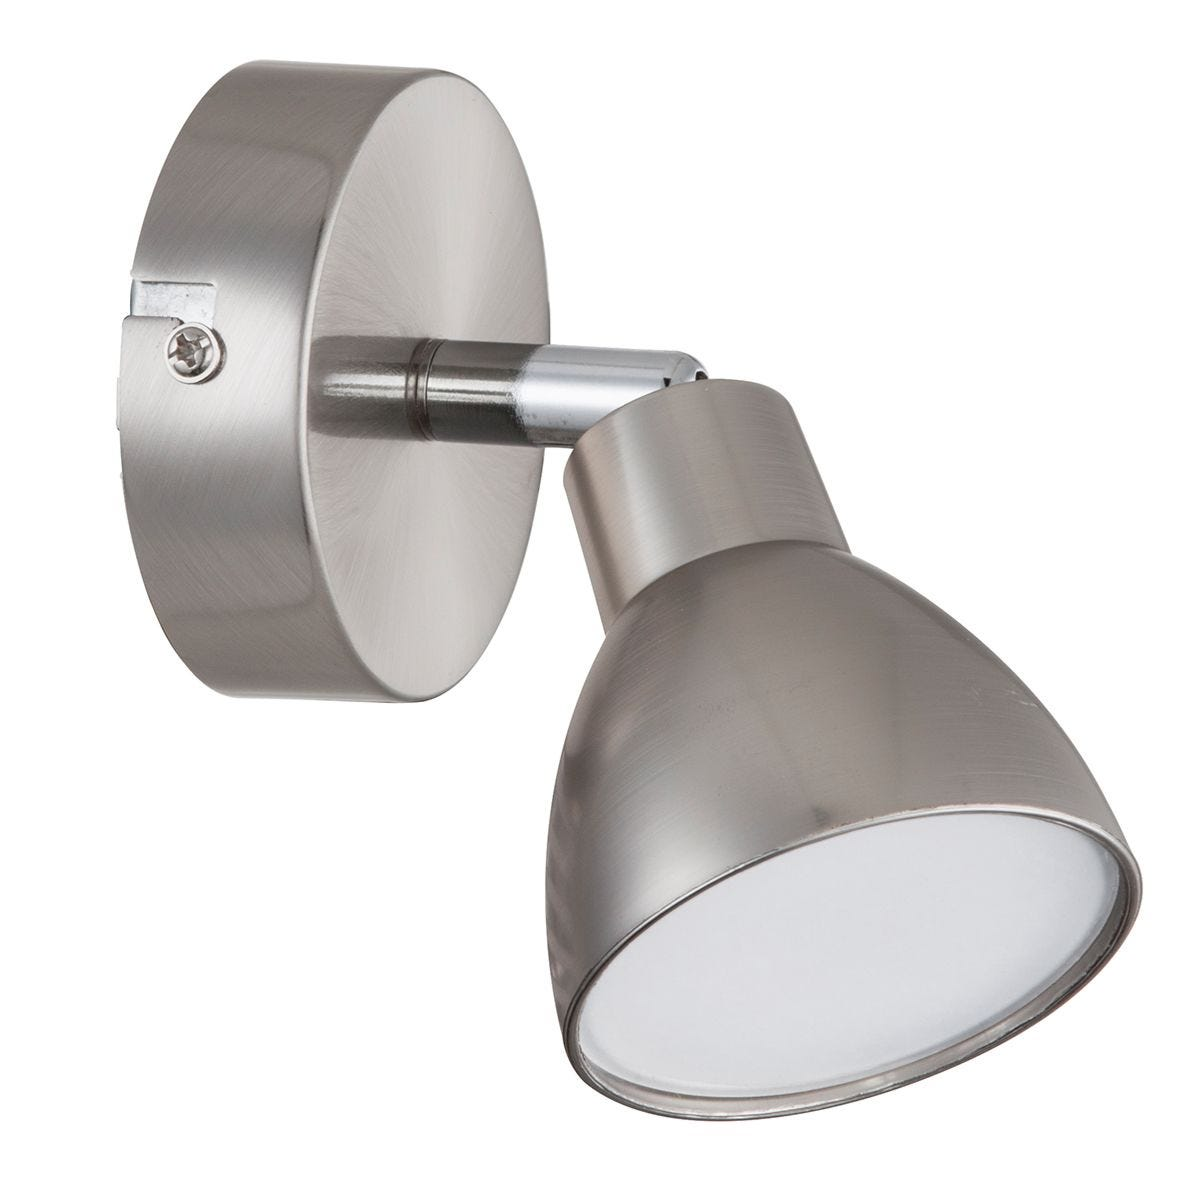 Action Lester Wall Lamp - Nickel Matt Finished/Chrome with LED Bulb